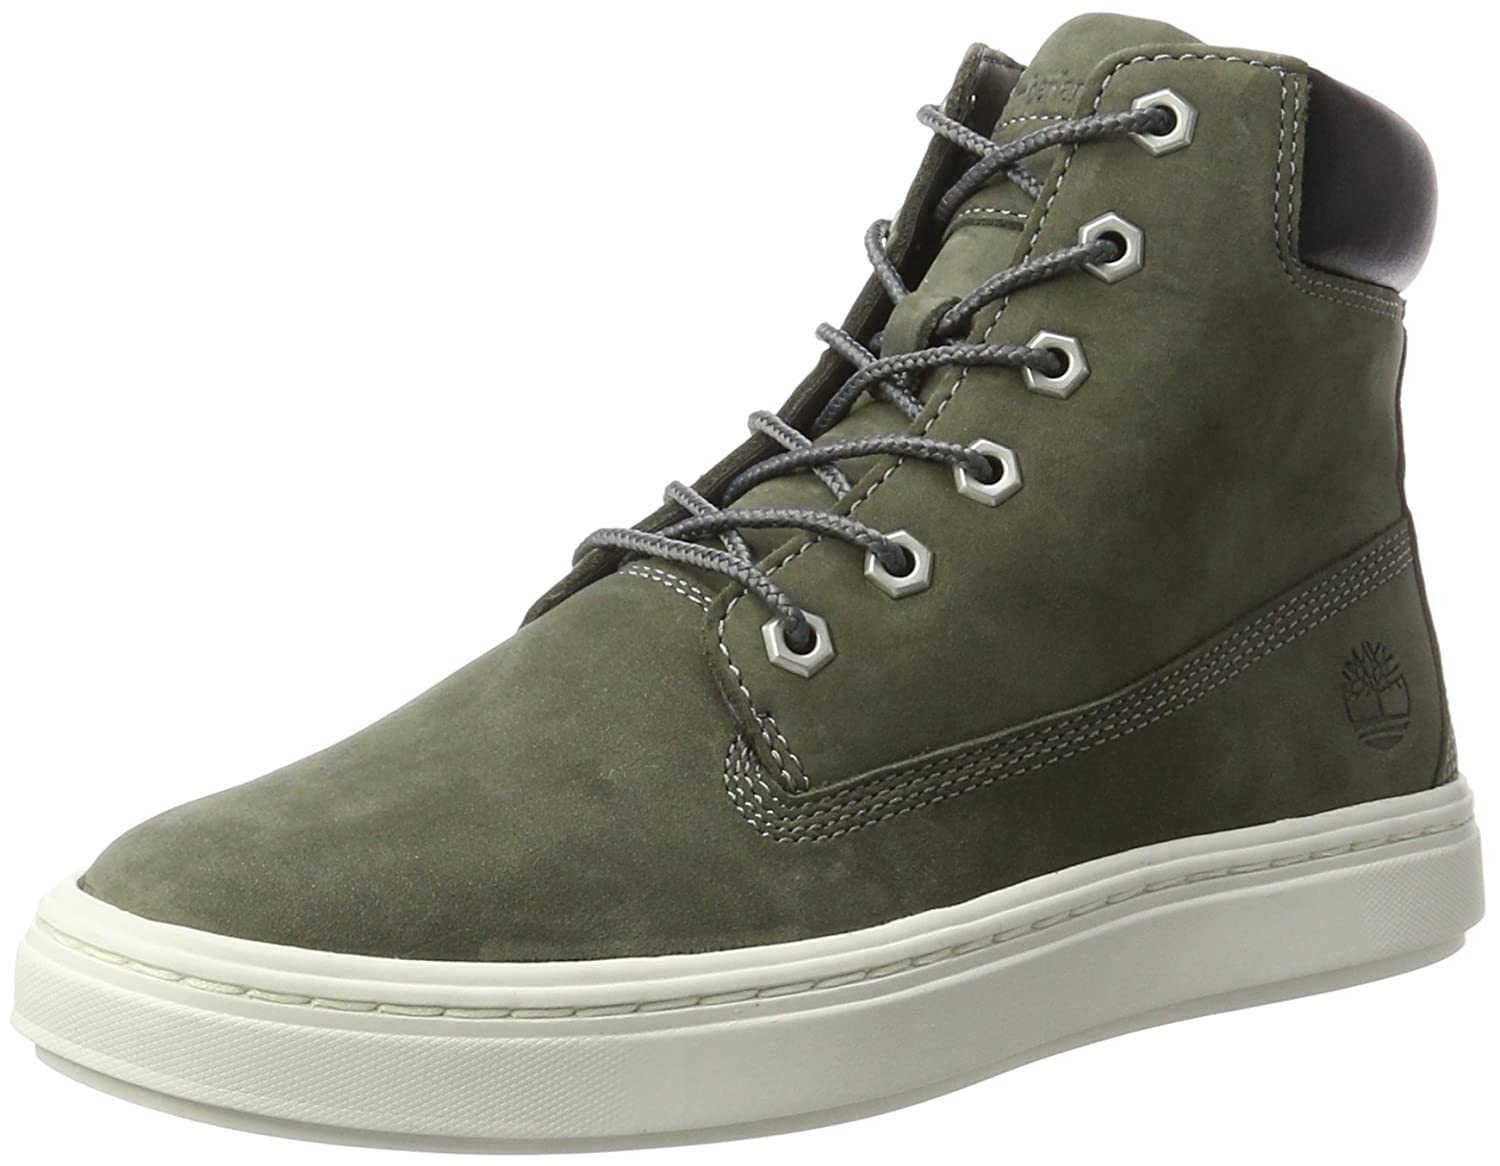 Timberland Femme Londyn, Bottes Timberland Femme Gris (New Gris Graphite) b50e851 - piero.space